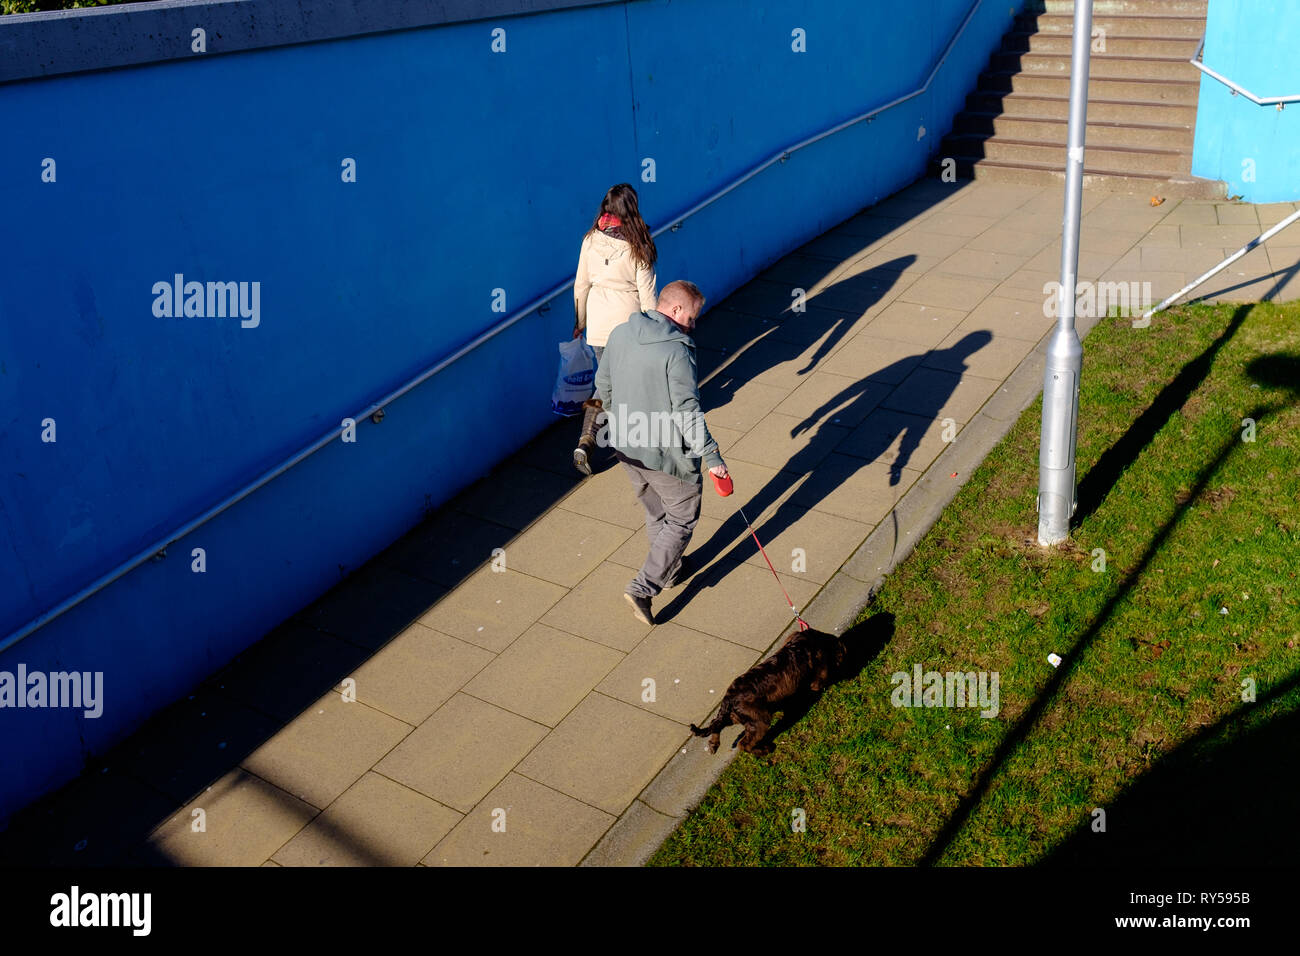 A man with dog on lead casts a shadow as he walks through underpass fort william town center - Stock Image